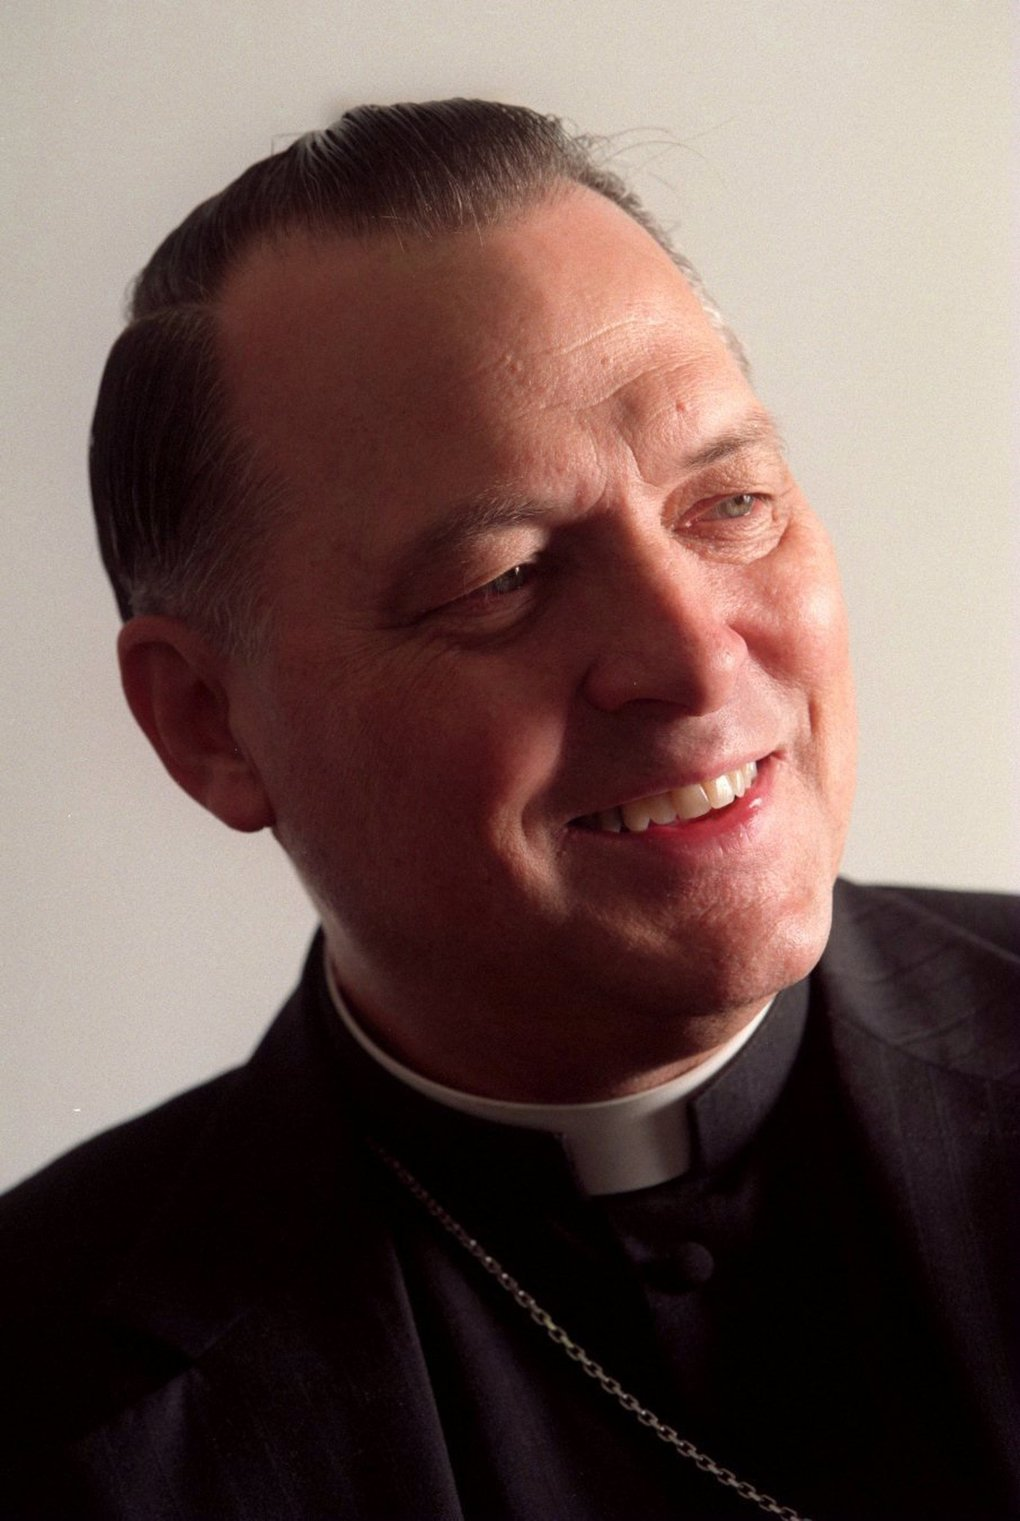 Archbishop Alexander Brunett was the spiritual leader of Western Washington's Catholics from 1997 until his retirement in 2010. He took particular interest in Catholic charities, remembering them from his Depression-era youth. (Barry Wong / The Seattle Times)